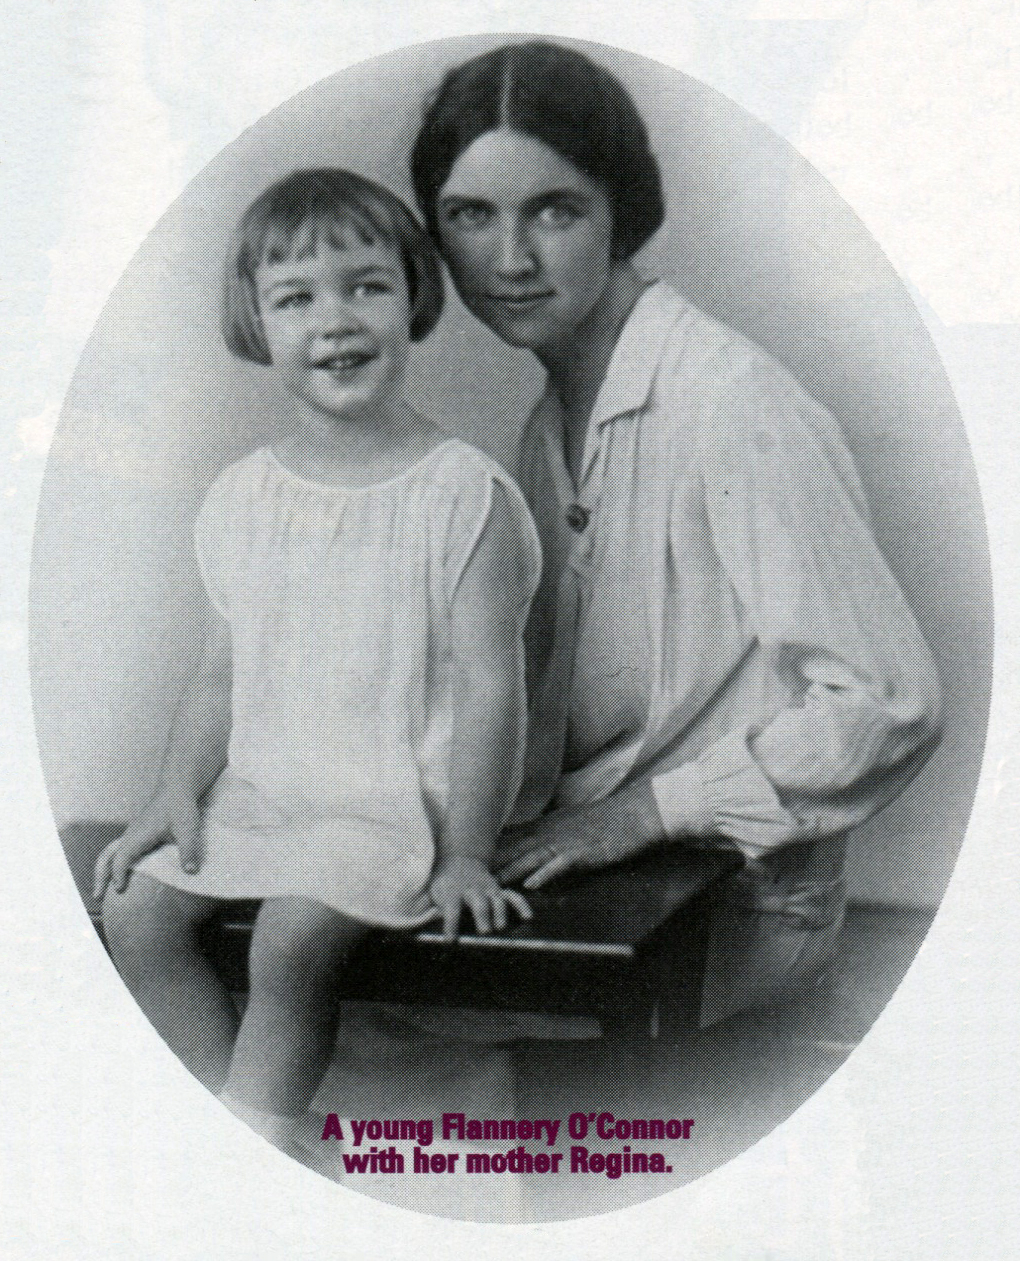 usps gives flannery o connor her own stamp irish america a young flannery o connor her mother regina photo courtesy flannery o